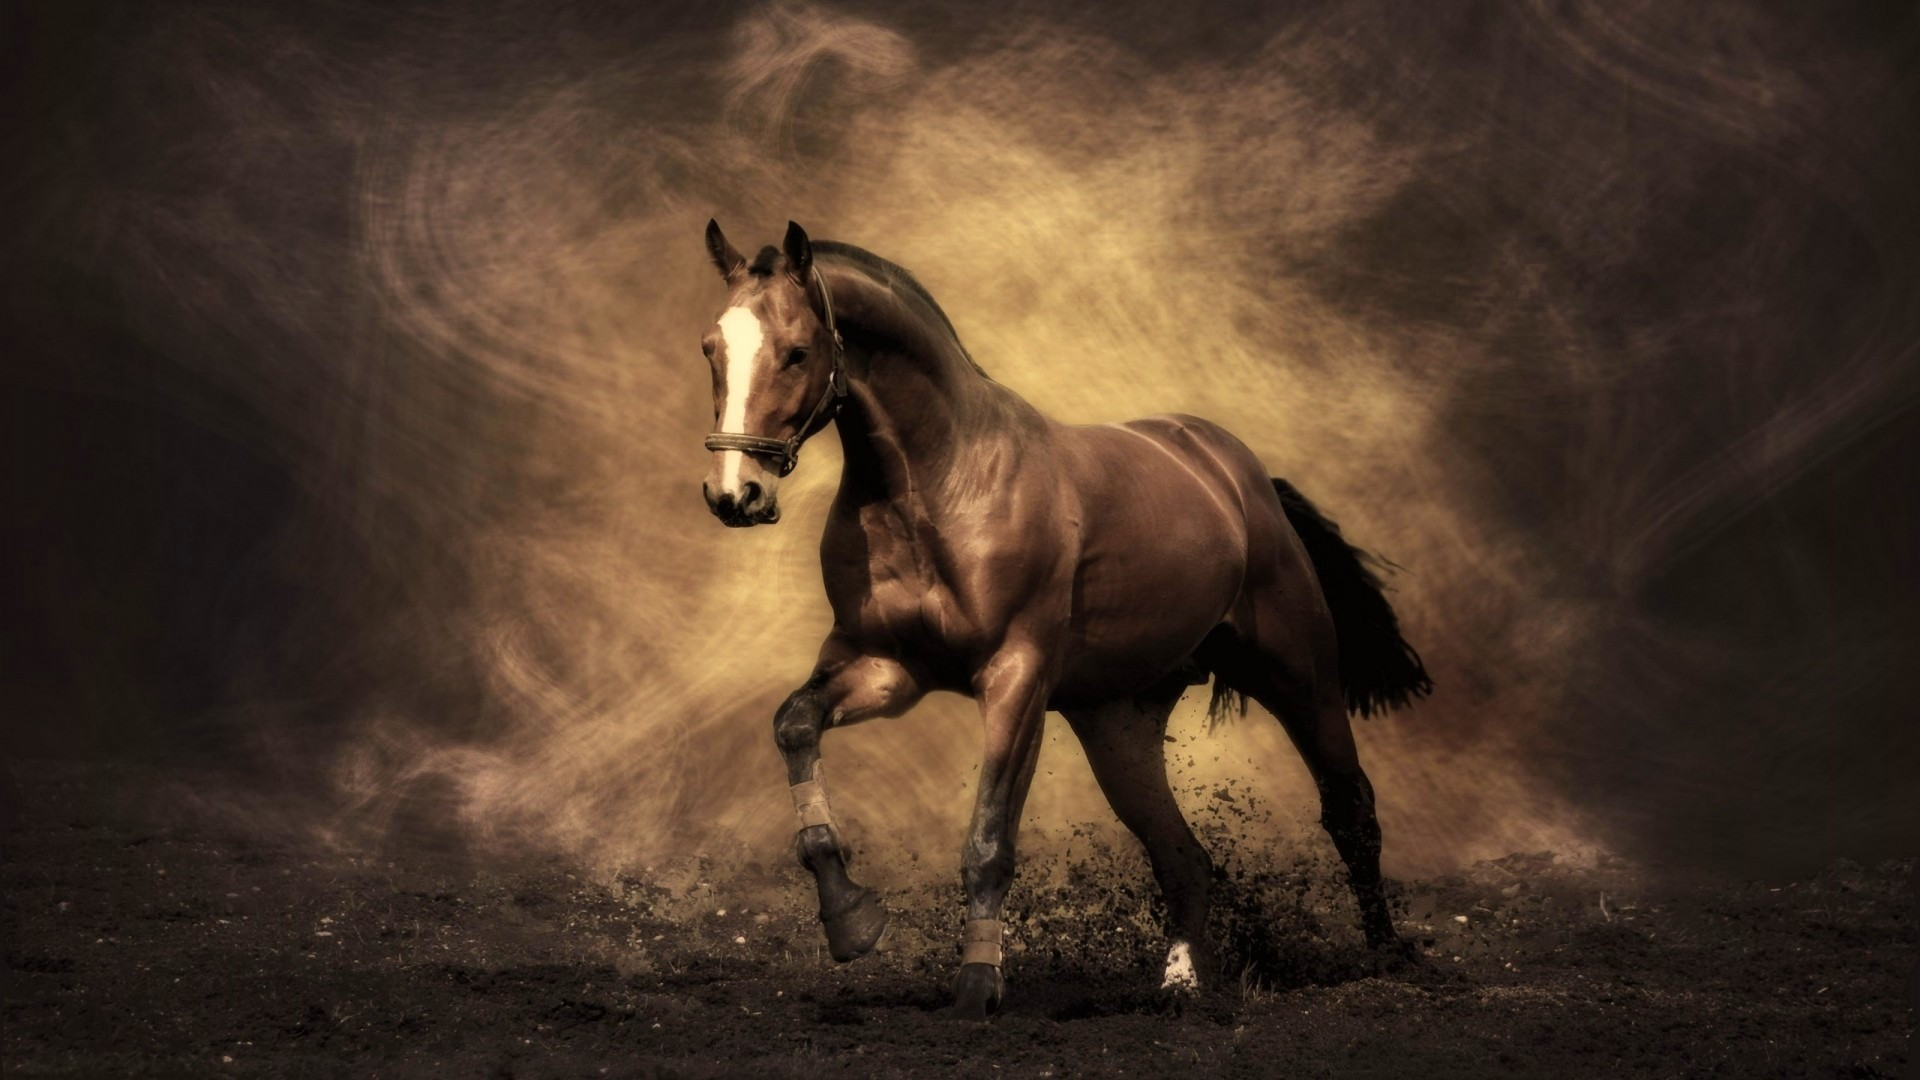 Beautiful Horse Wallpaper 66 Images